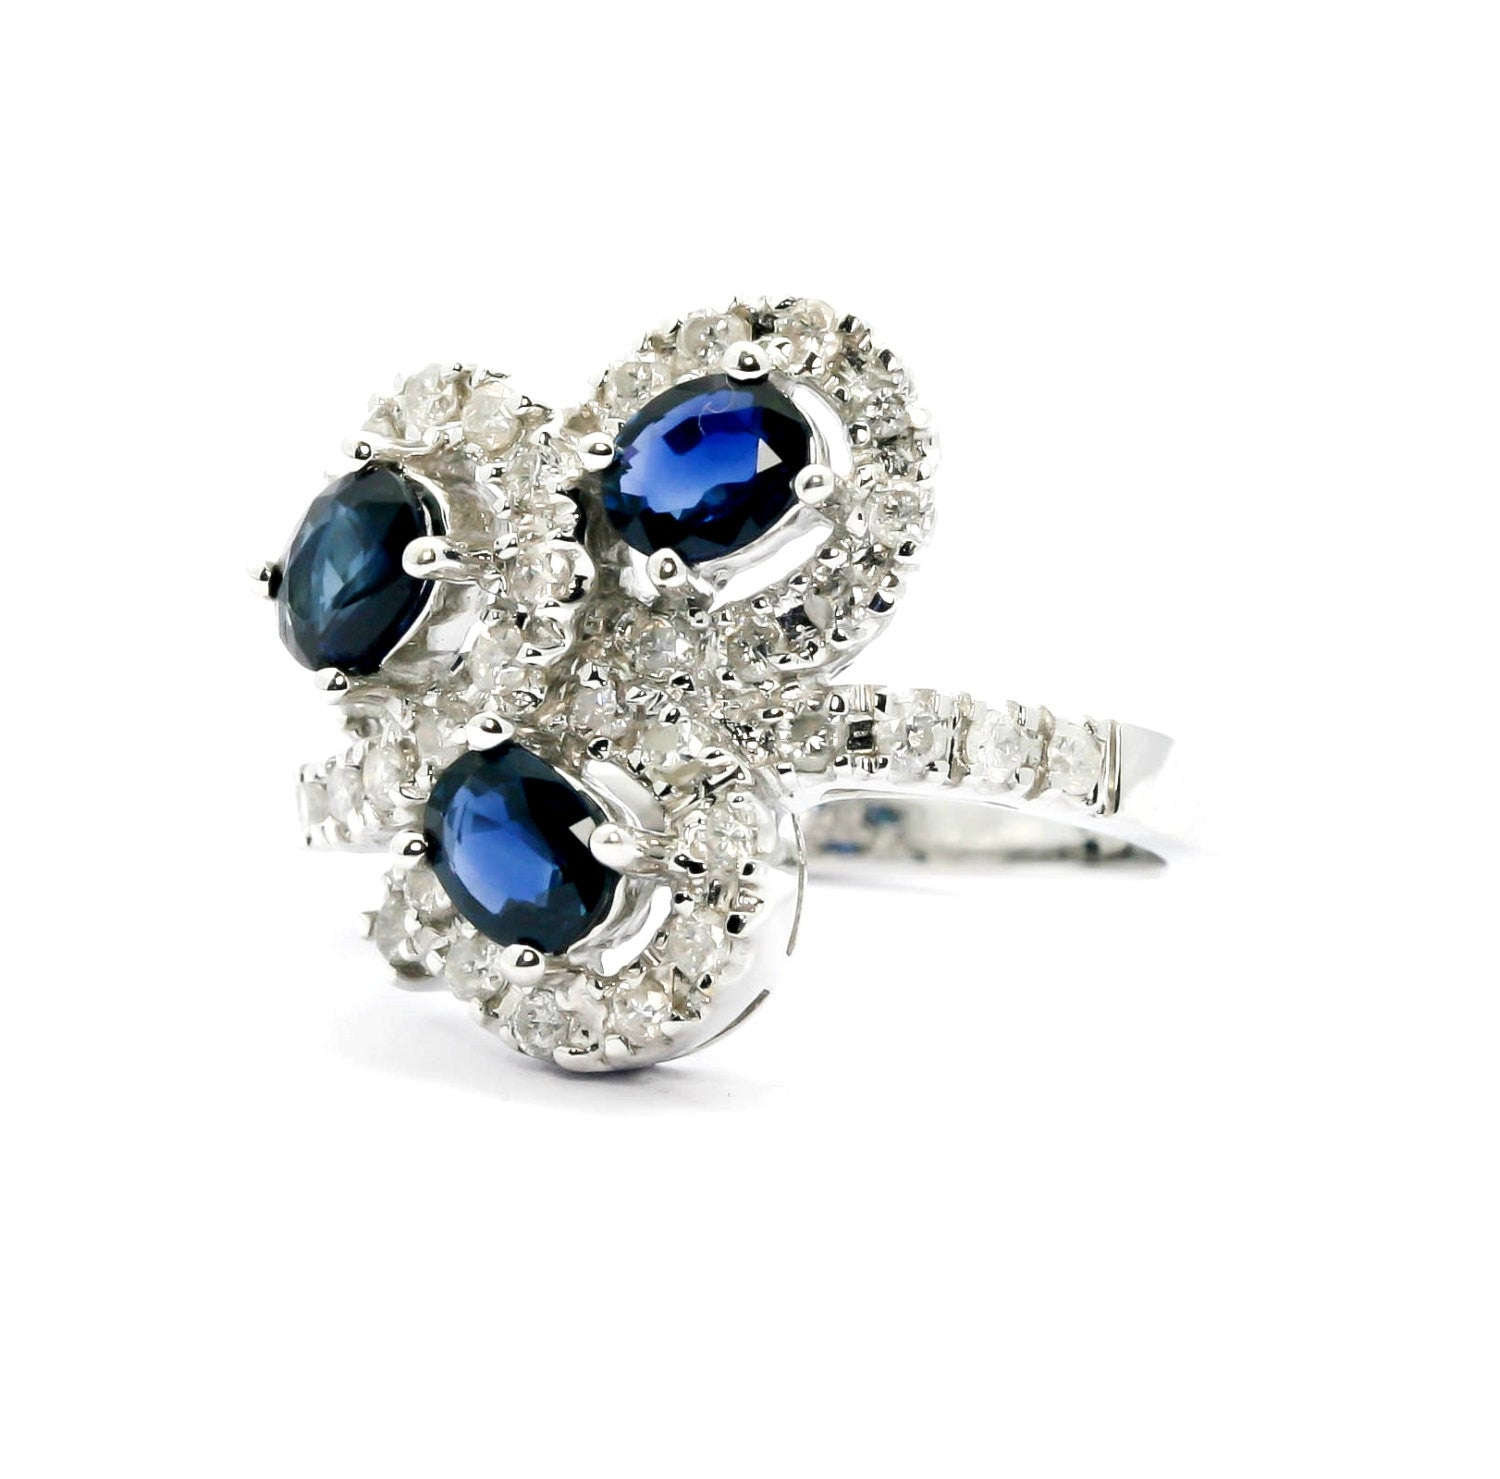 SALE! Vintage Look Blue Sapphire & Diamond Cocktail Ring, Triple Blue Sapphire Gemstone, 18K Gold